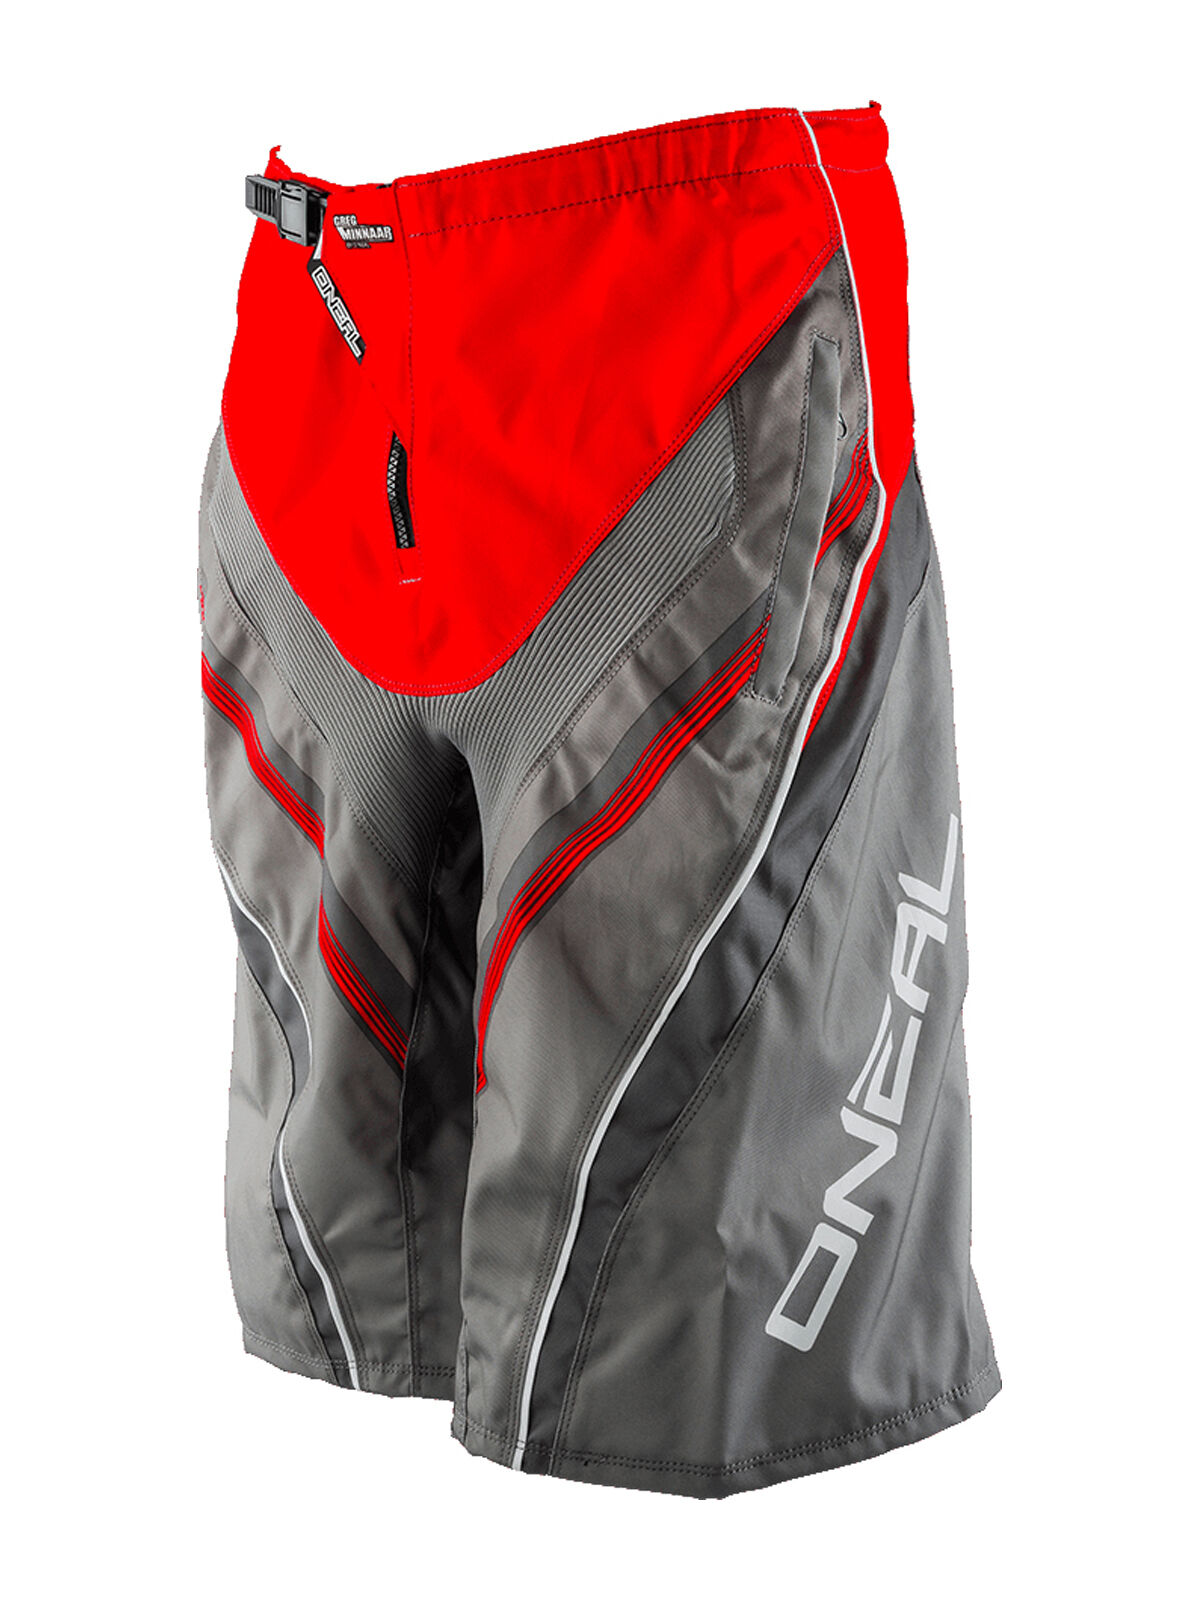 O'Neal Element FR MTB Men's Cycling Short Red Grey Size XL S-636